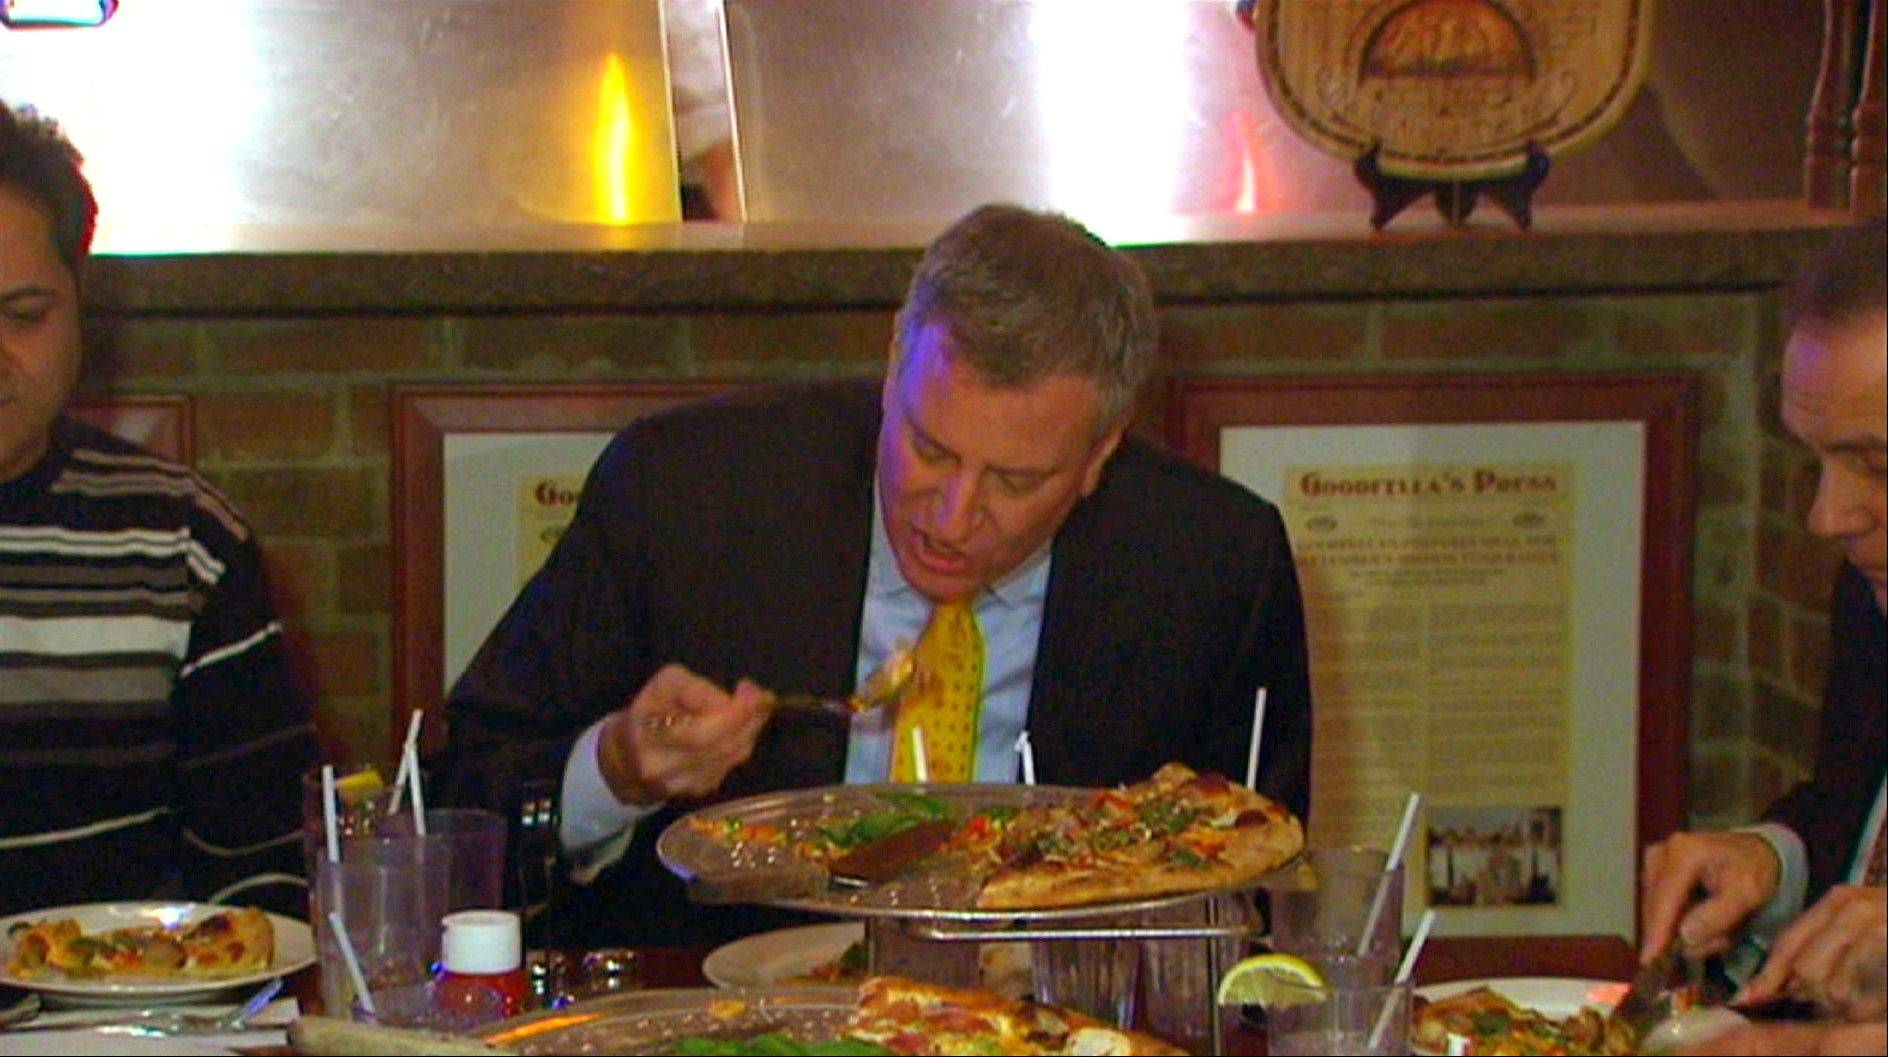 New York Mayor Bill de Blasio eats pizza with a fork Friday at Goodfellas Pizza in the Staten Island borough of New York.